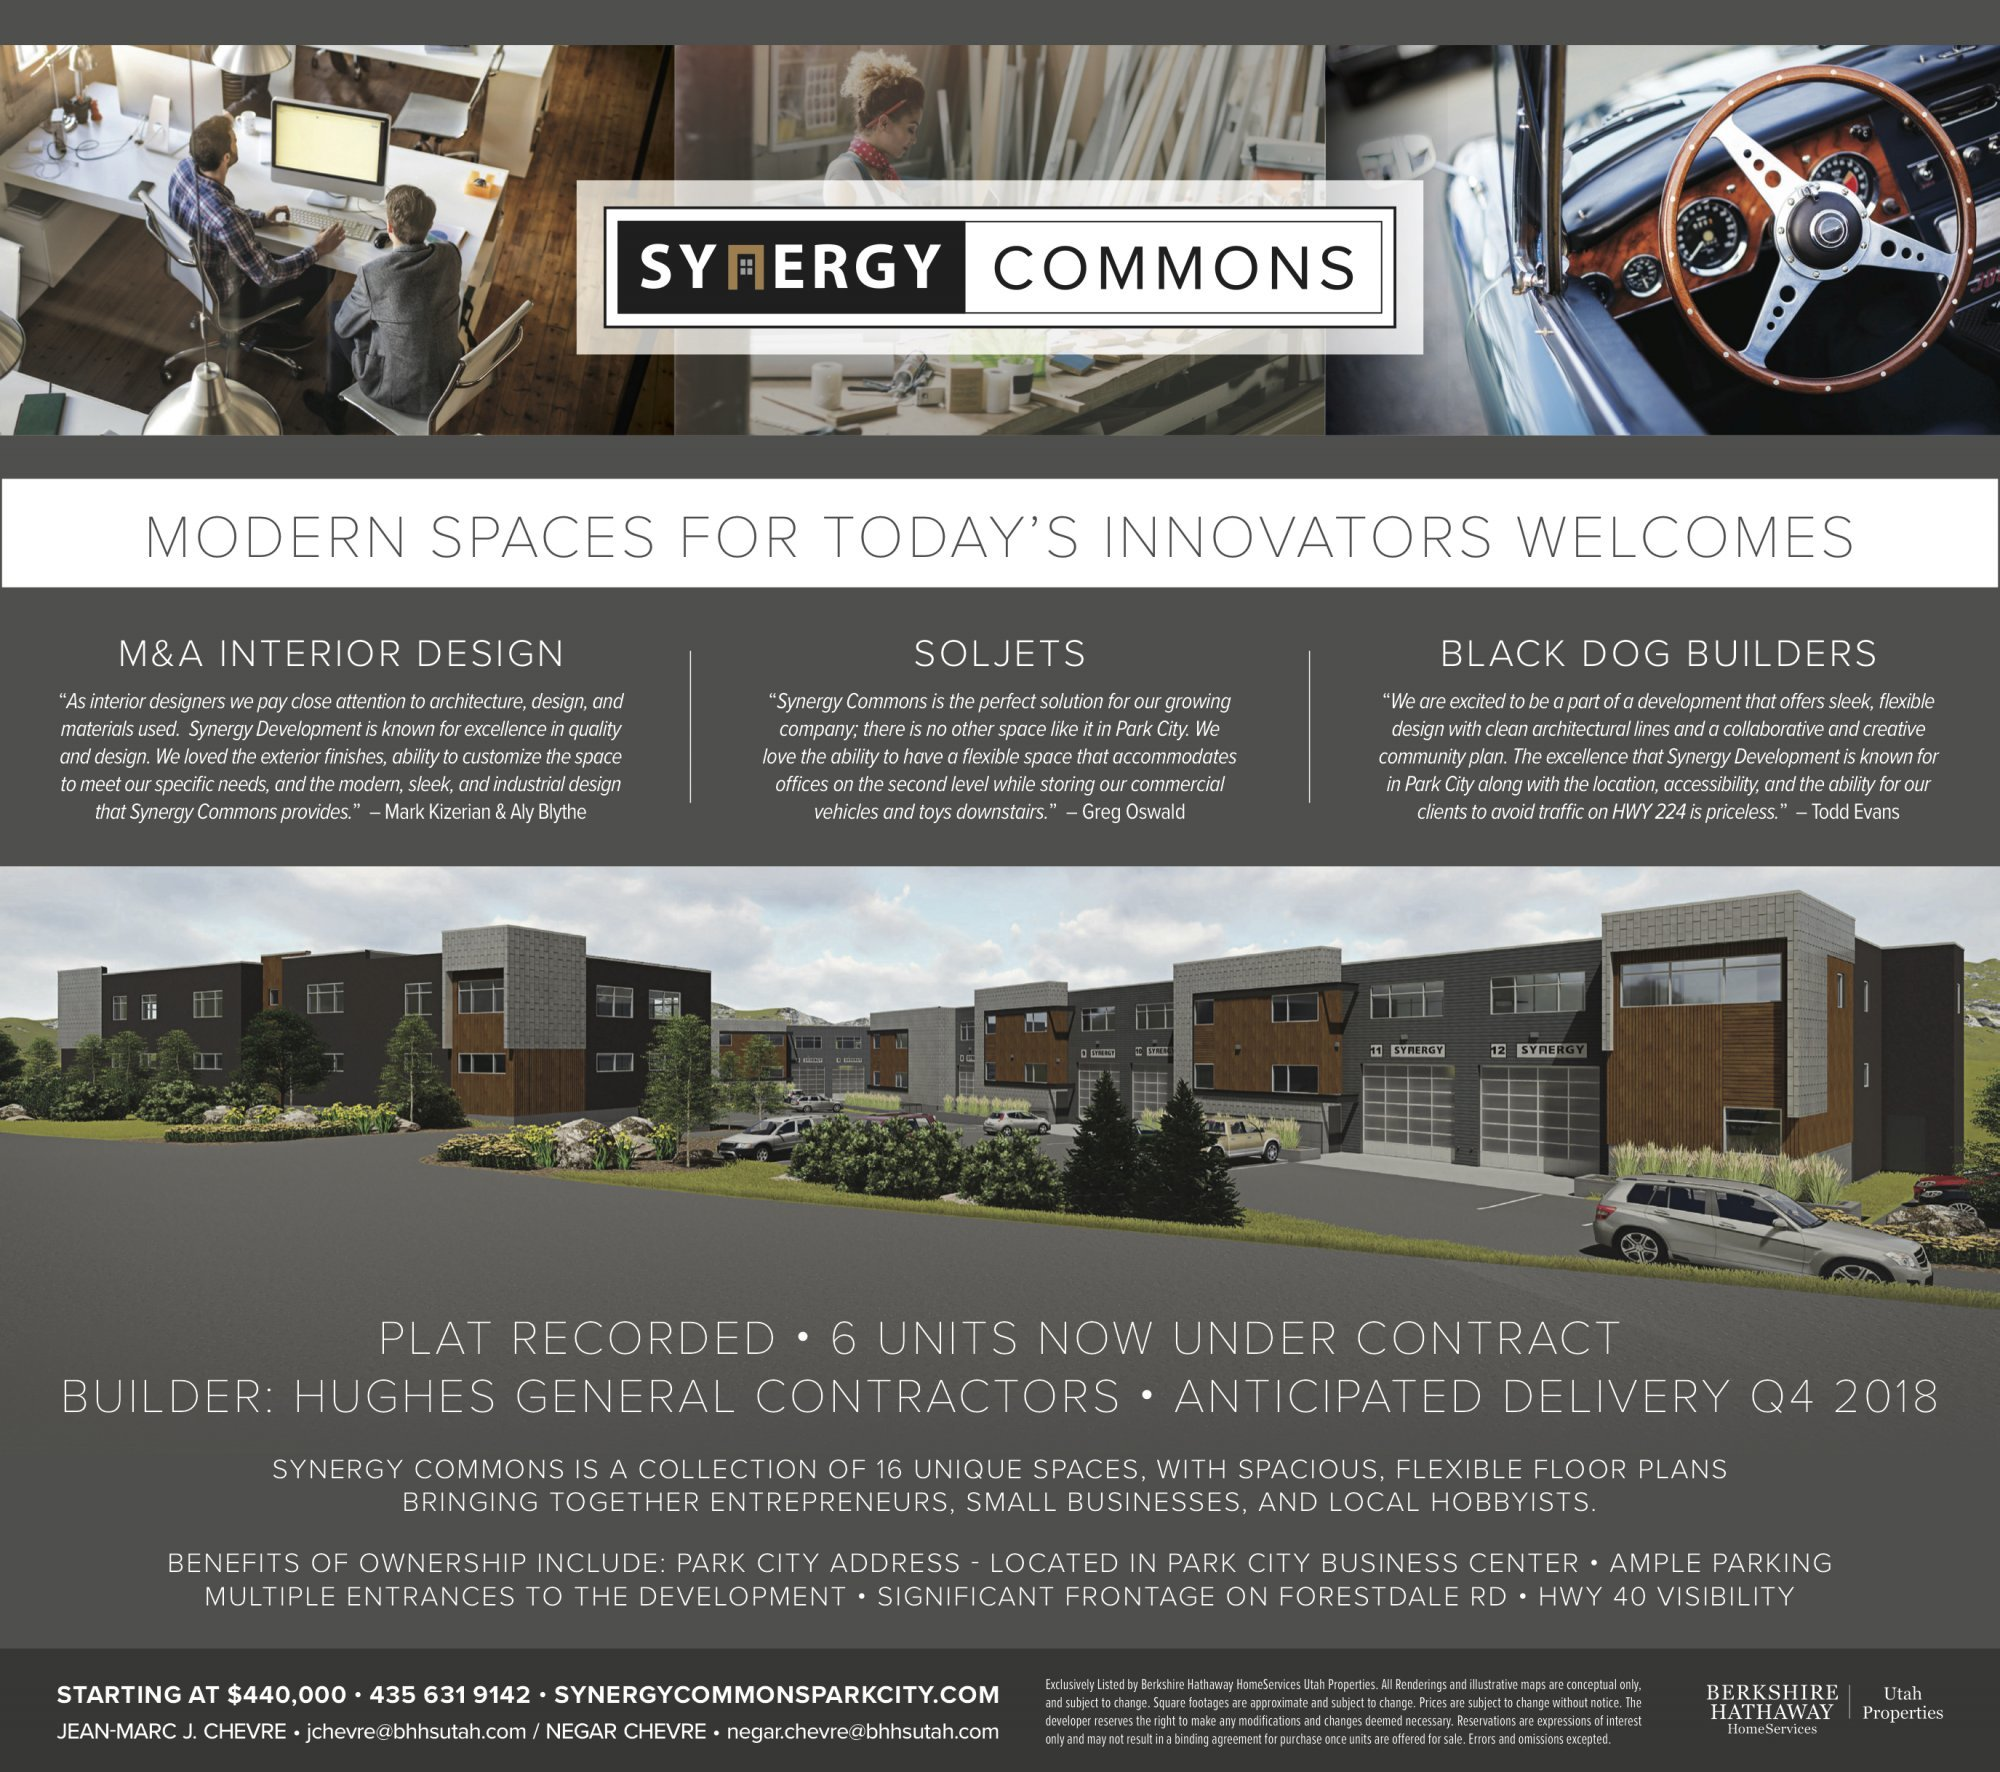 Synergy Commons Park City 6 Units Under Contract